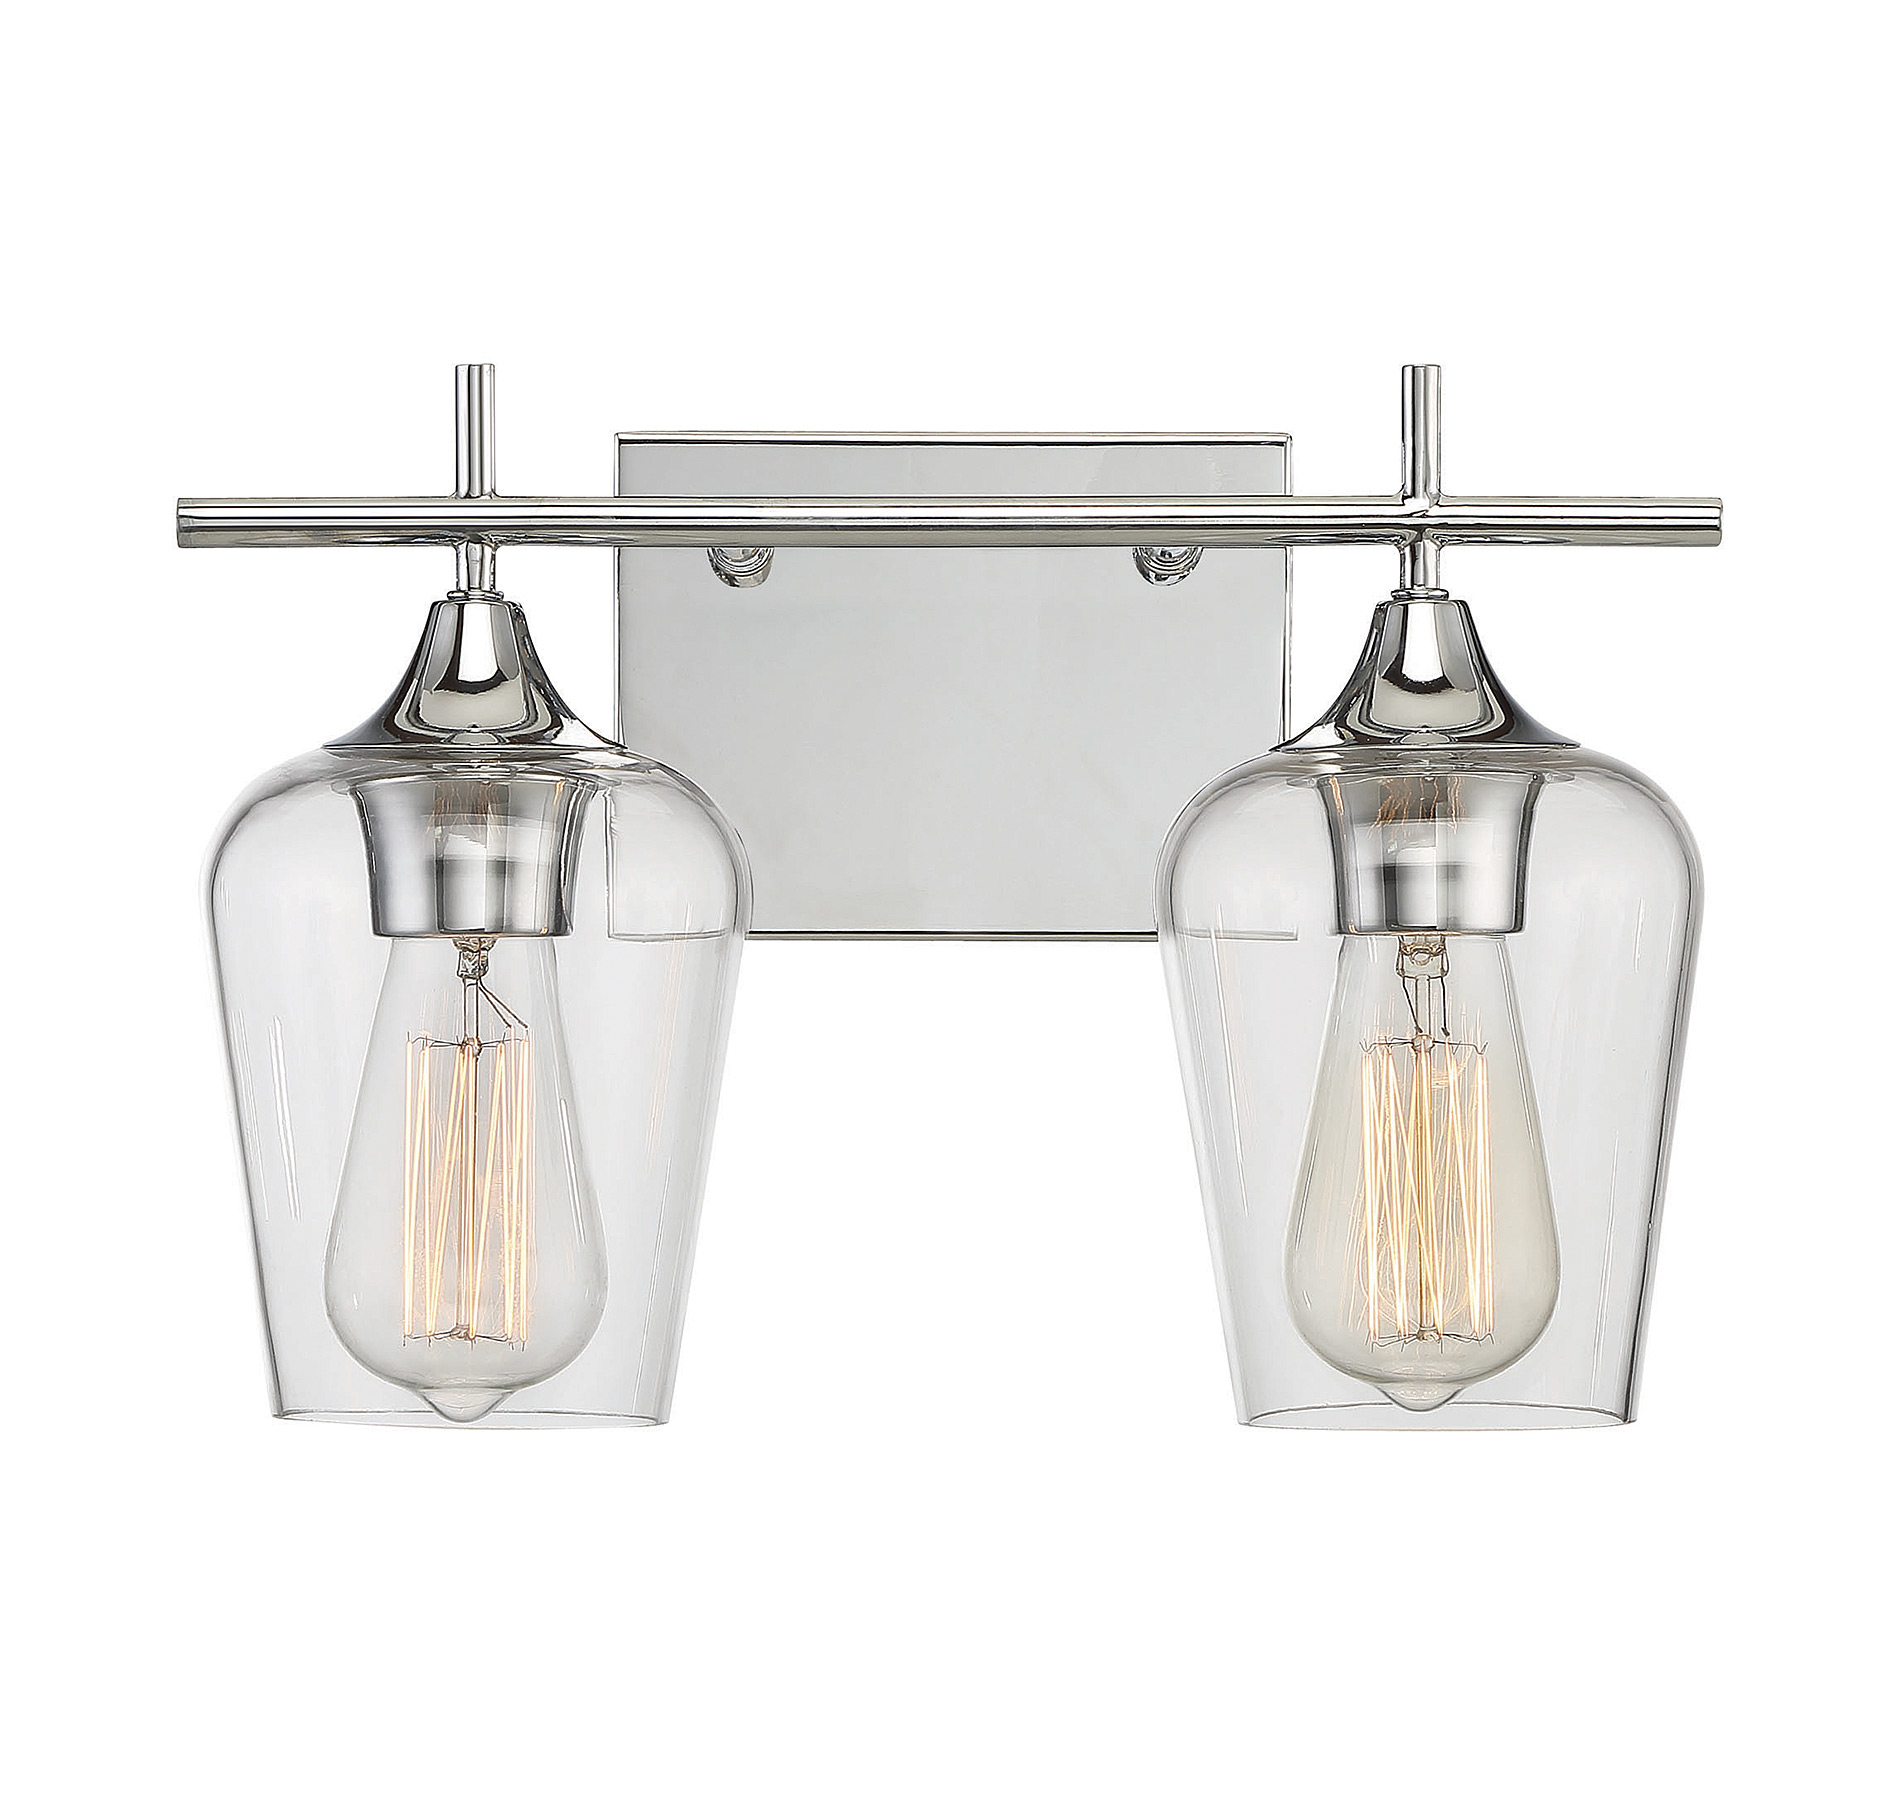 Octave Bathroom Vanity Light by Savoy House | 8-4030-2-11